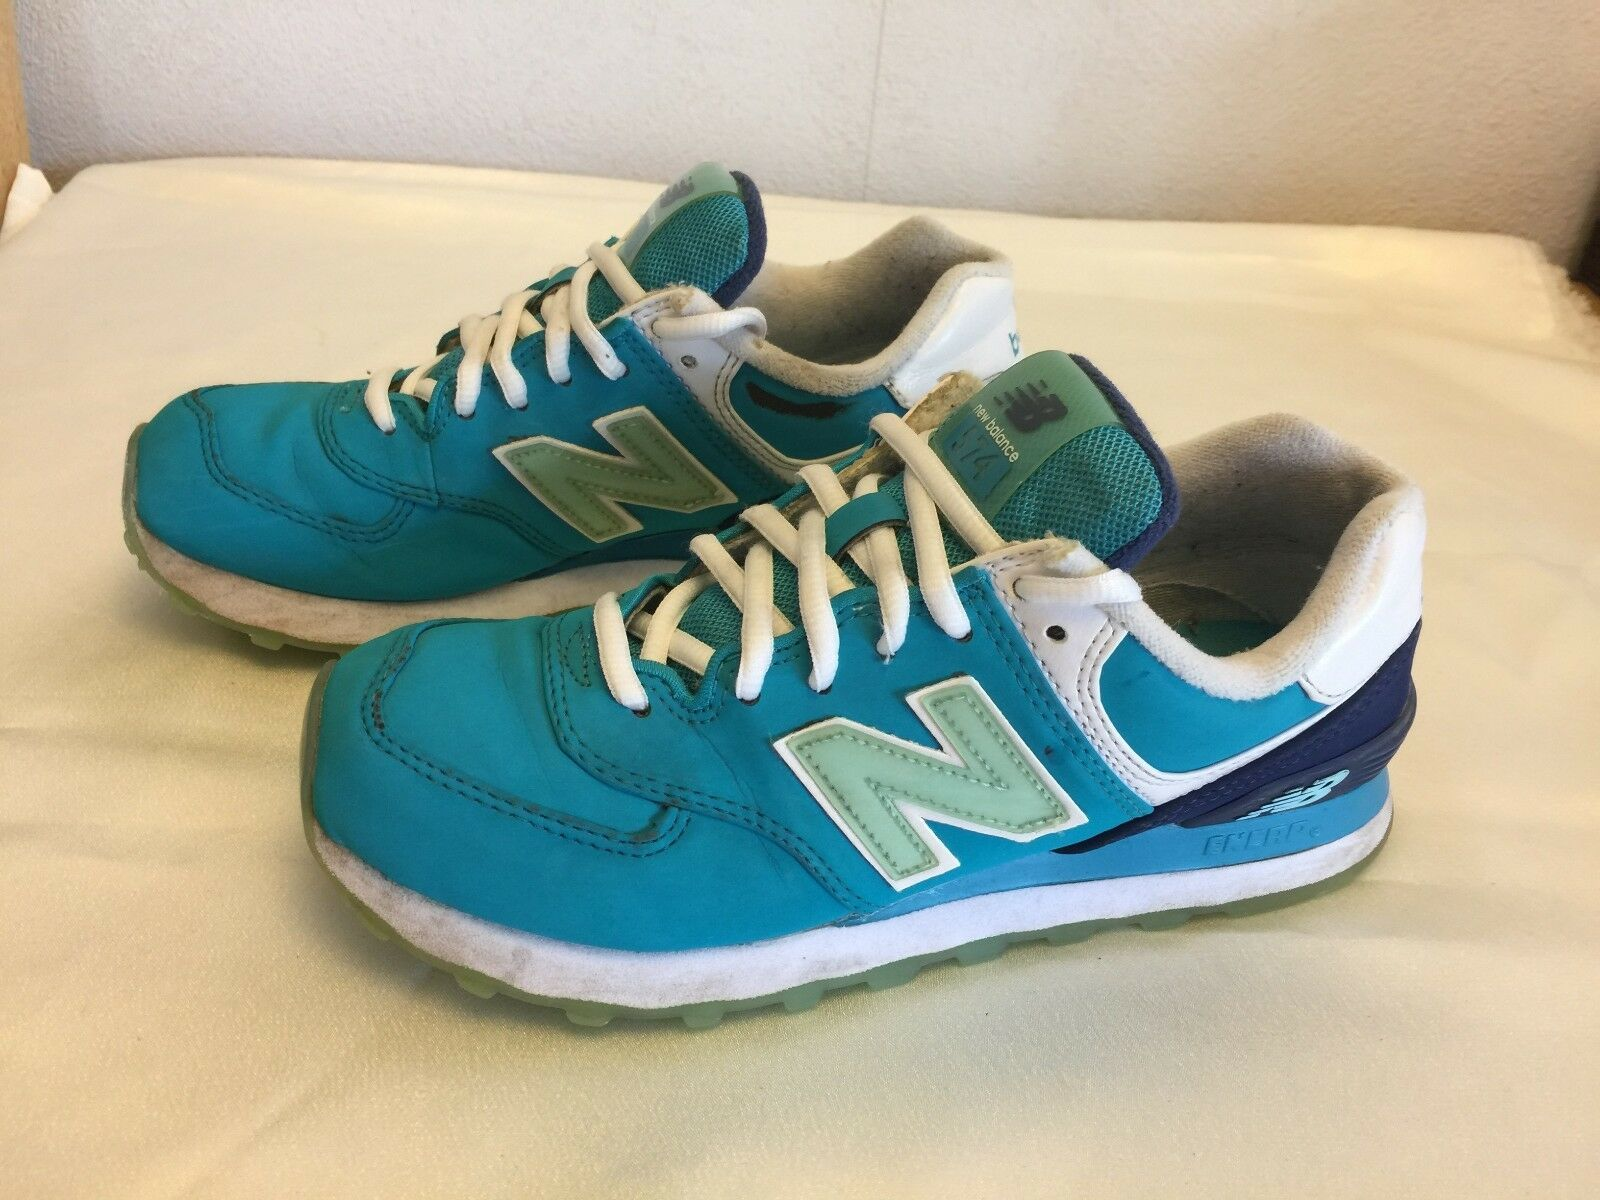 NEW 574 BALANCE 574 NEW MEN'S TRAINERS SIZE (*****) 36ce39